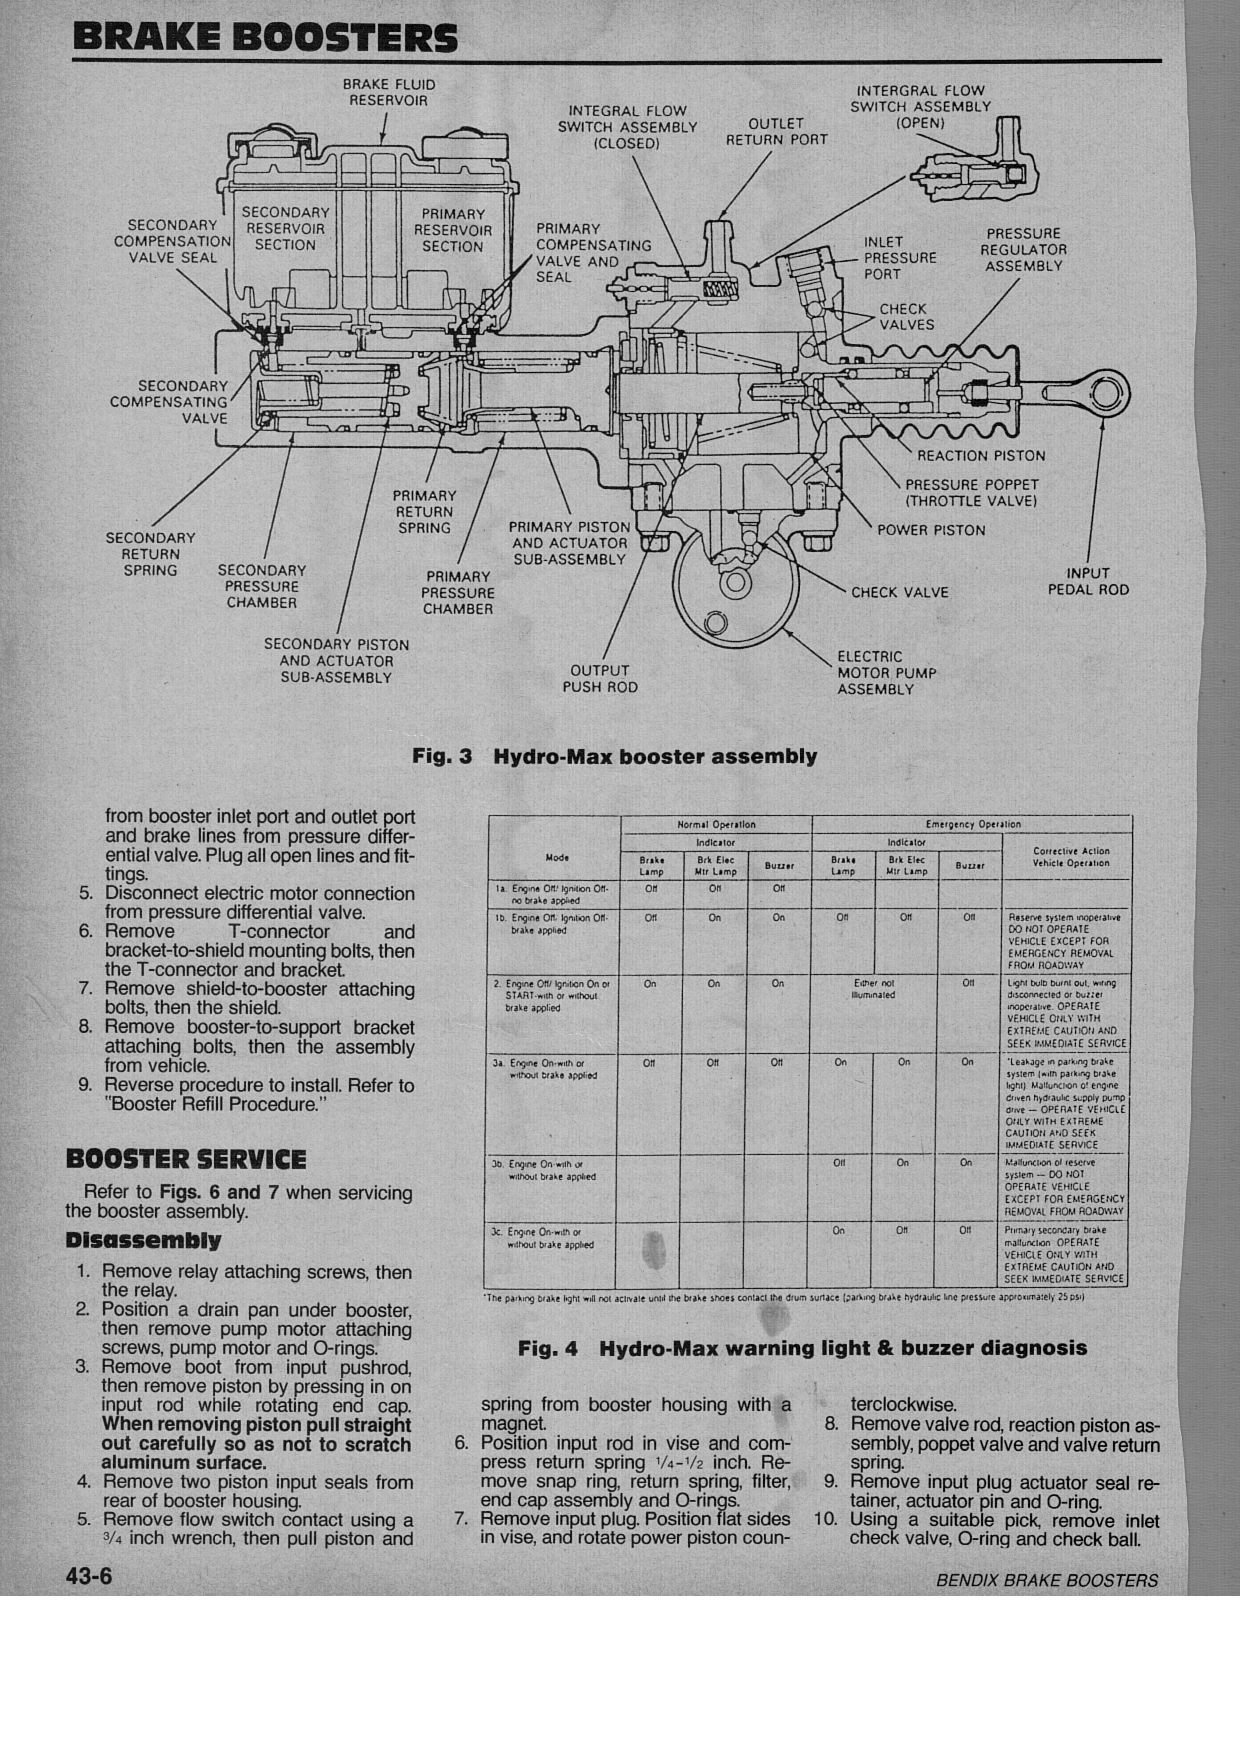 1987 Ford F700 Wiring Manual One Word Quickstart Guide Book 1989 Truck Cab Foldout Diagram F600 F800 Ft800 Vtx 1800 Get Free Image About Dump